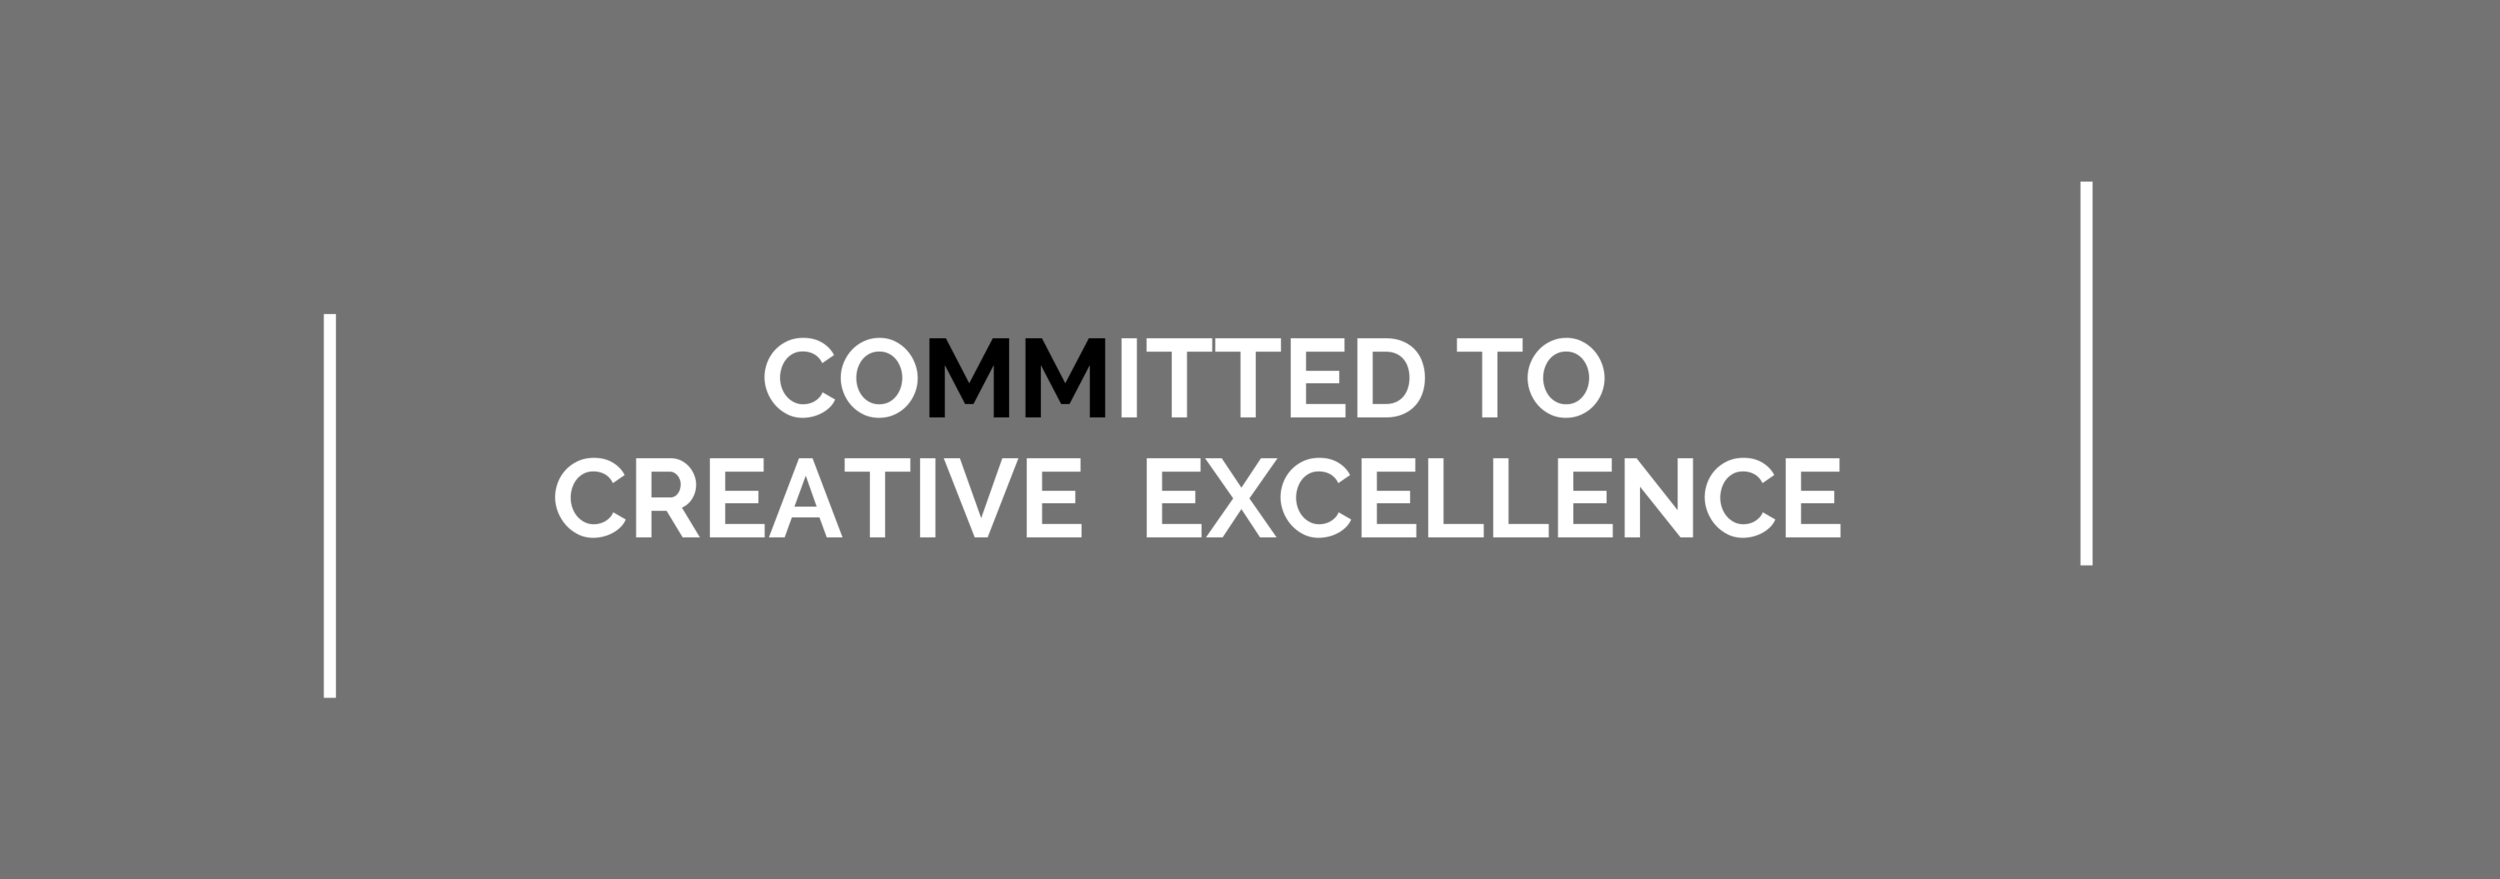 Multi-Disciplined Artists Committed to Creative Excellence (3).png